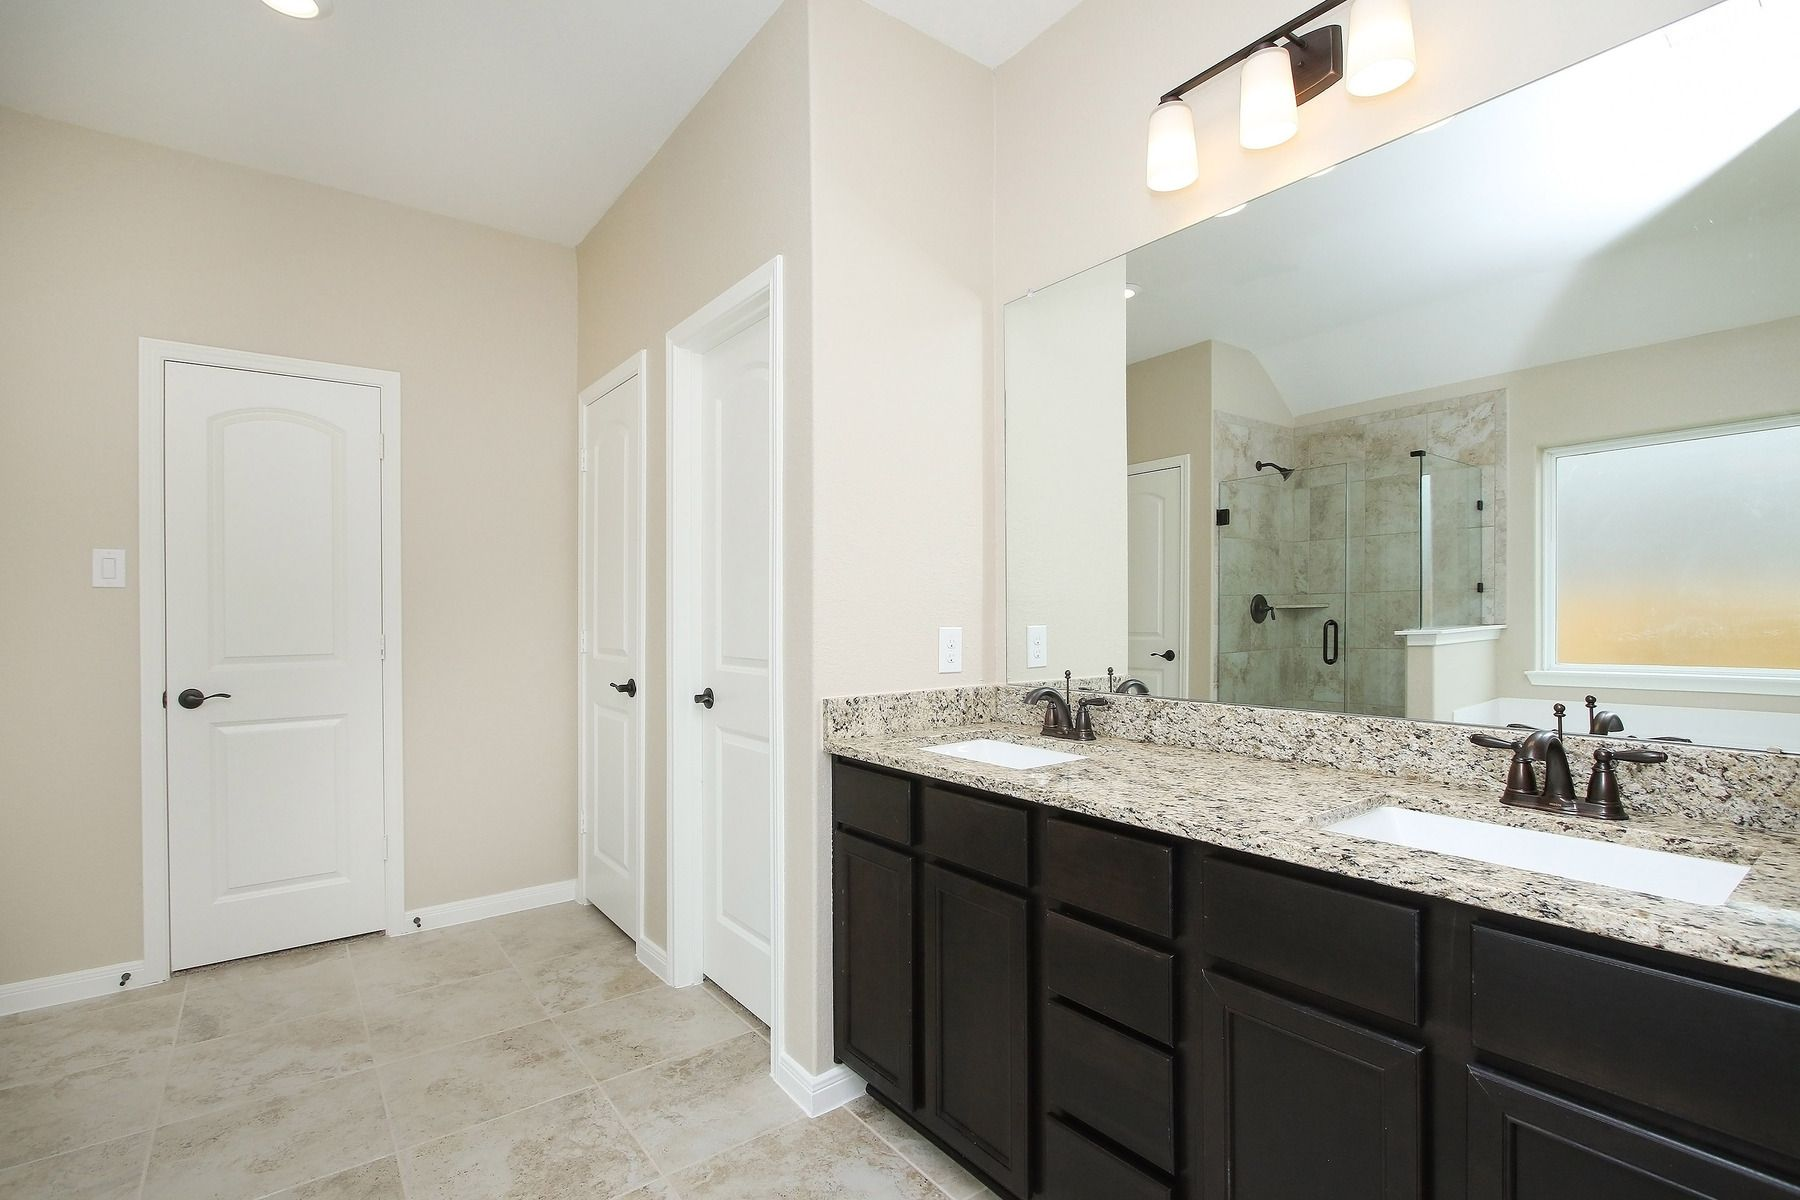 Bathroom featured in the Hendrie  By LGI Homes in Houston, TX